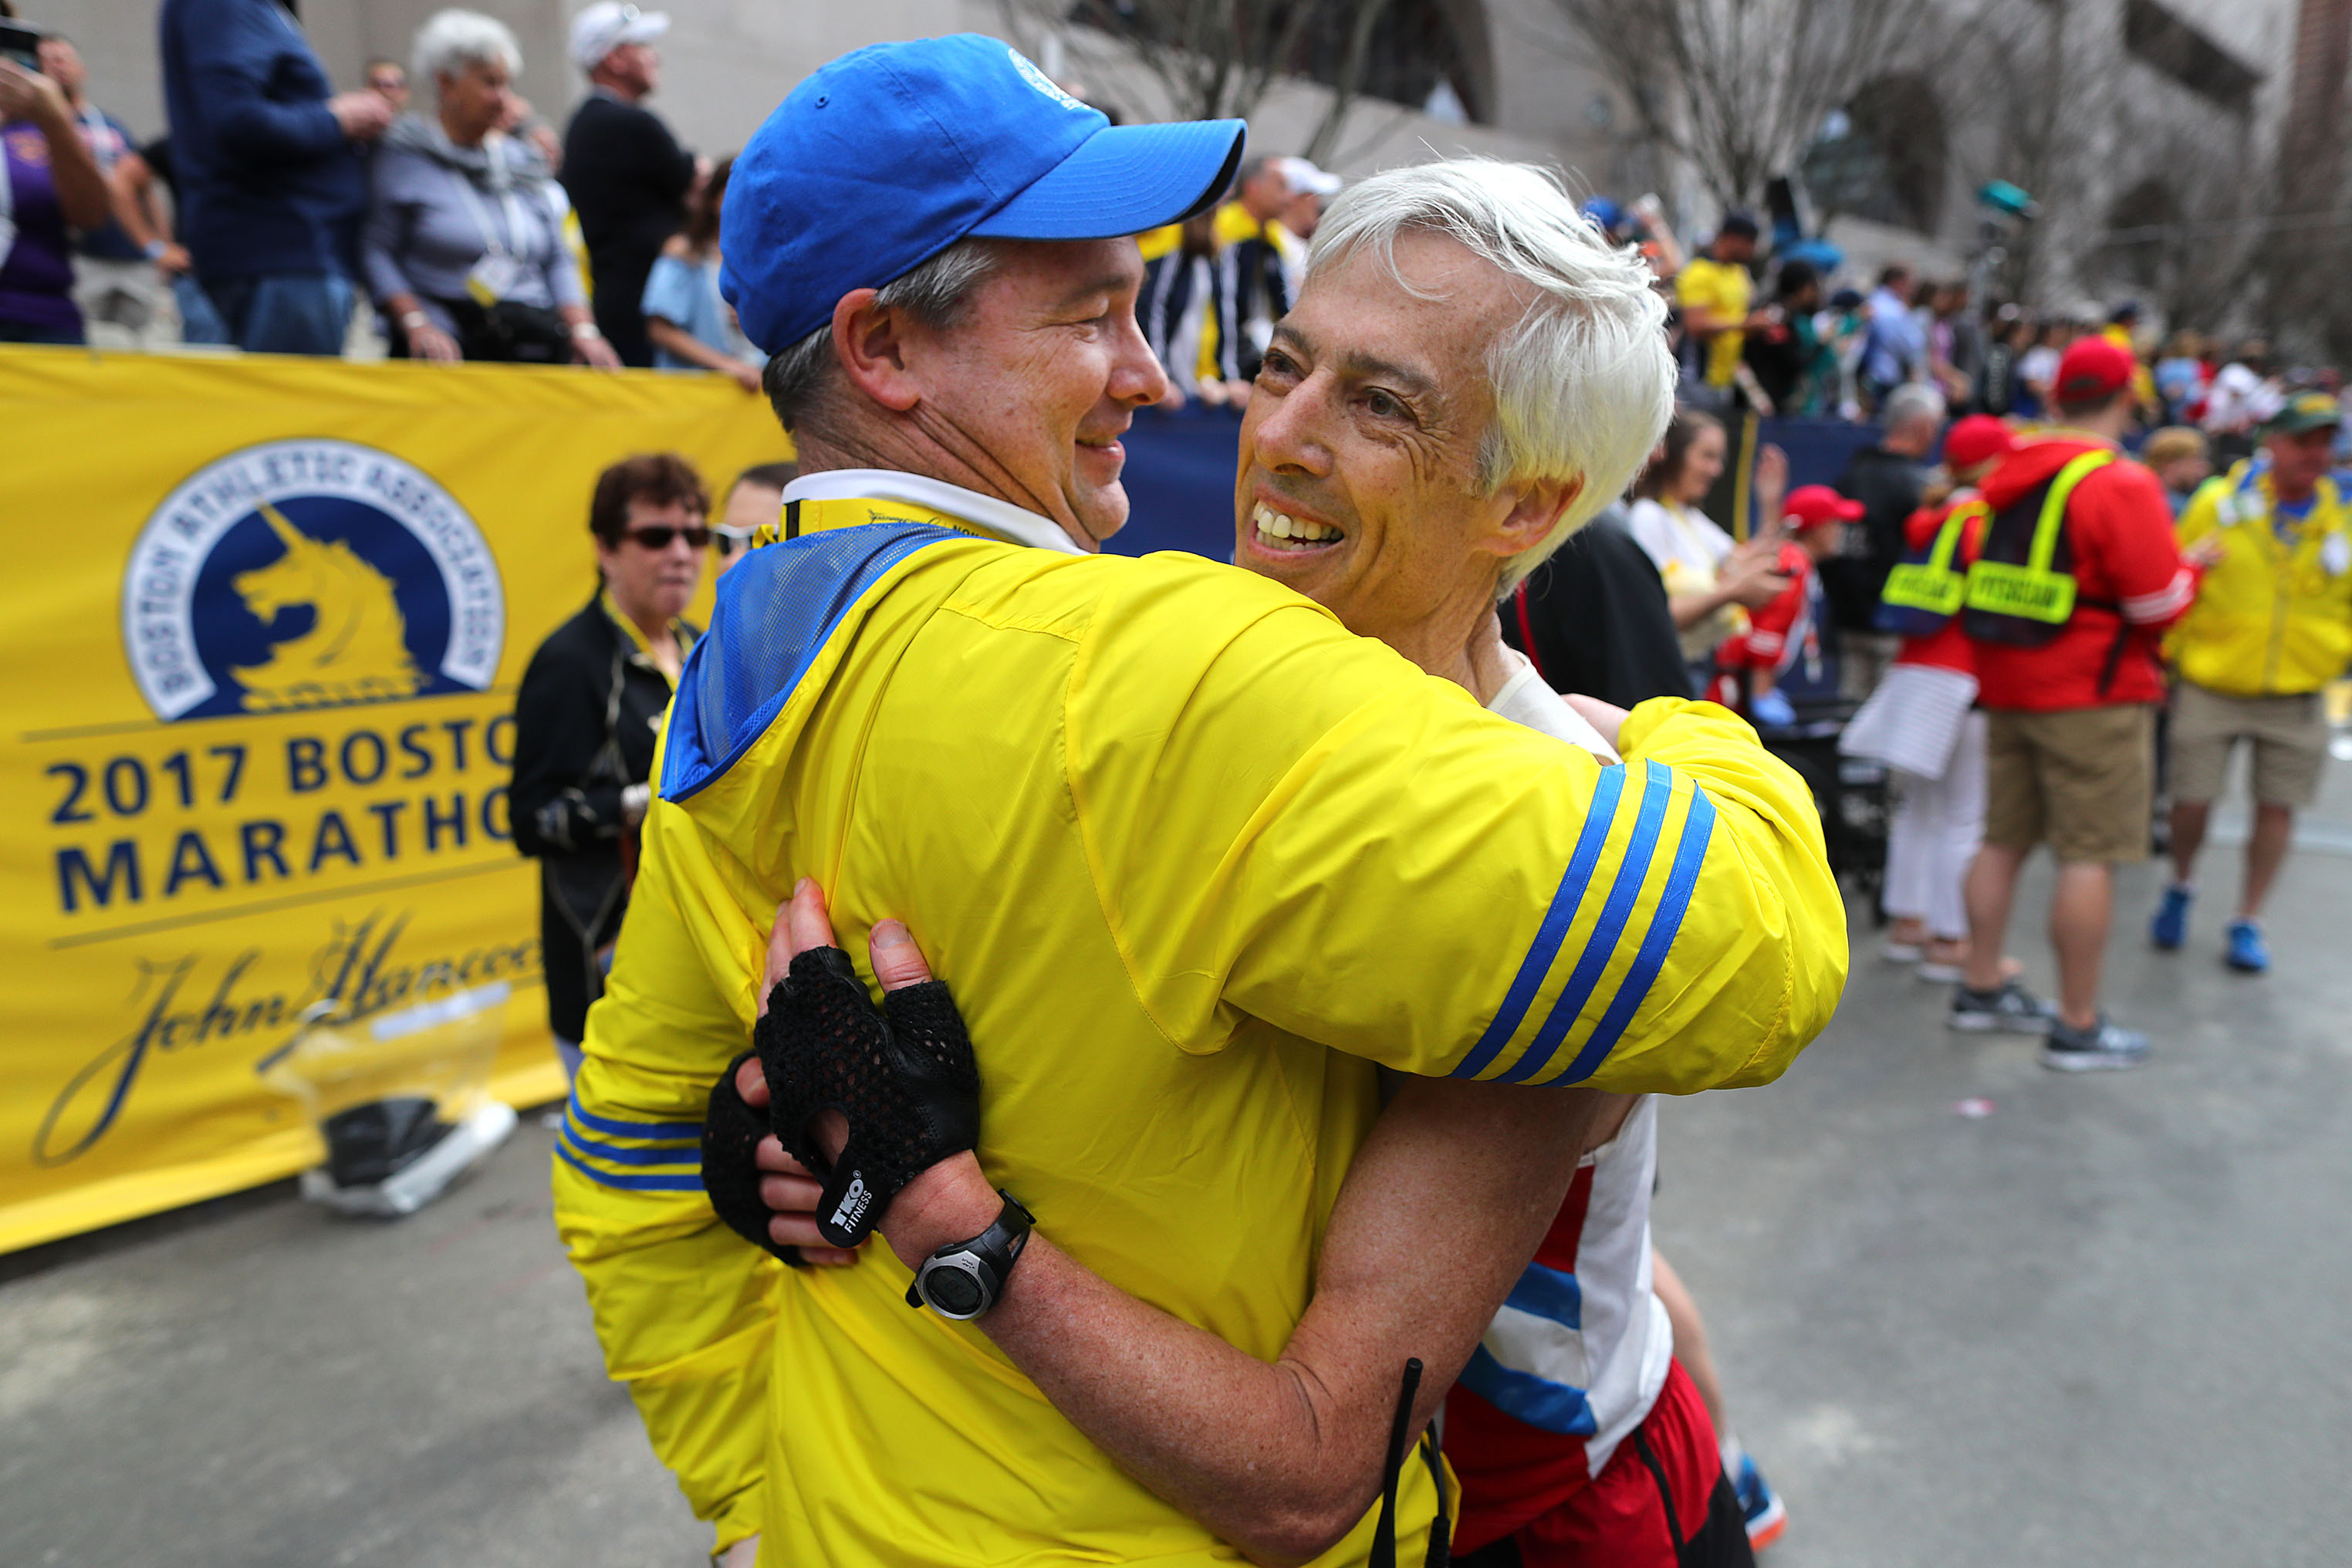 BOSTON, MA - APRIL 17: Bennett (Ben) Beach, right, is hugged by Boston Athletic Association's Jack Fleming after Beach finished in his 50th straight Boston Marathon at the 121st Boston Marathon finish line on April 17, 2017. (Photo by John Tlumacki/The Boston Globe via Getty Images)